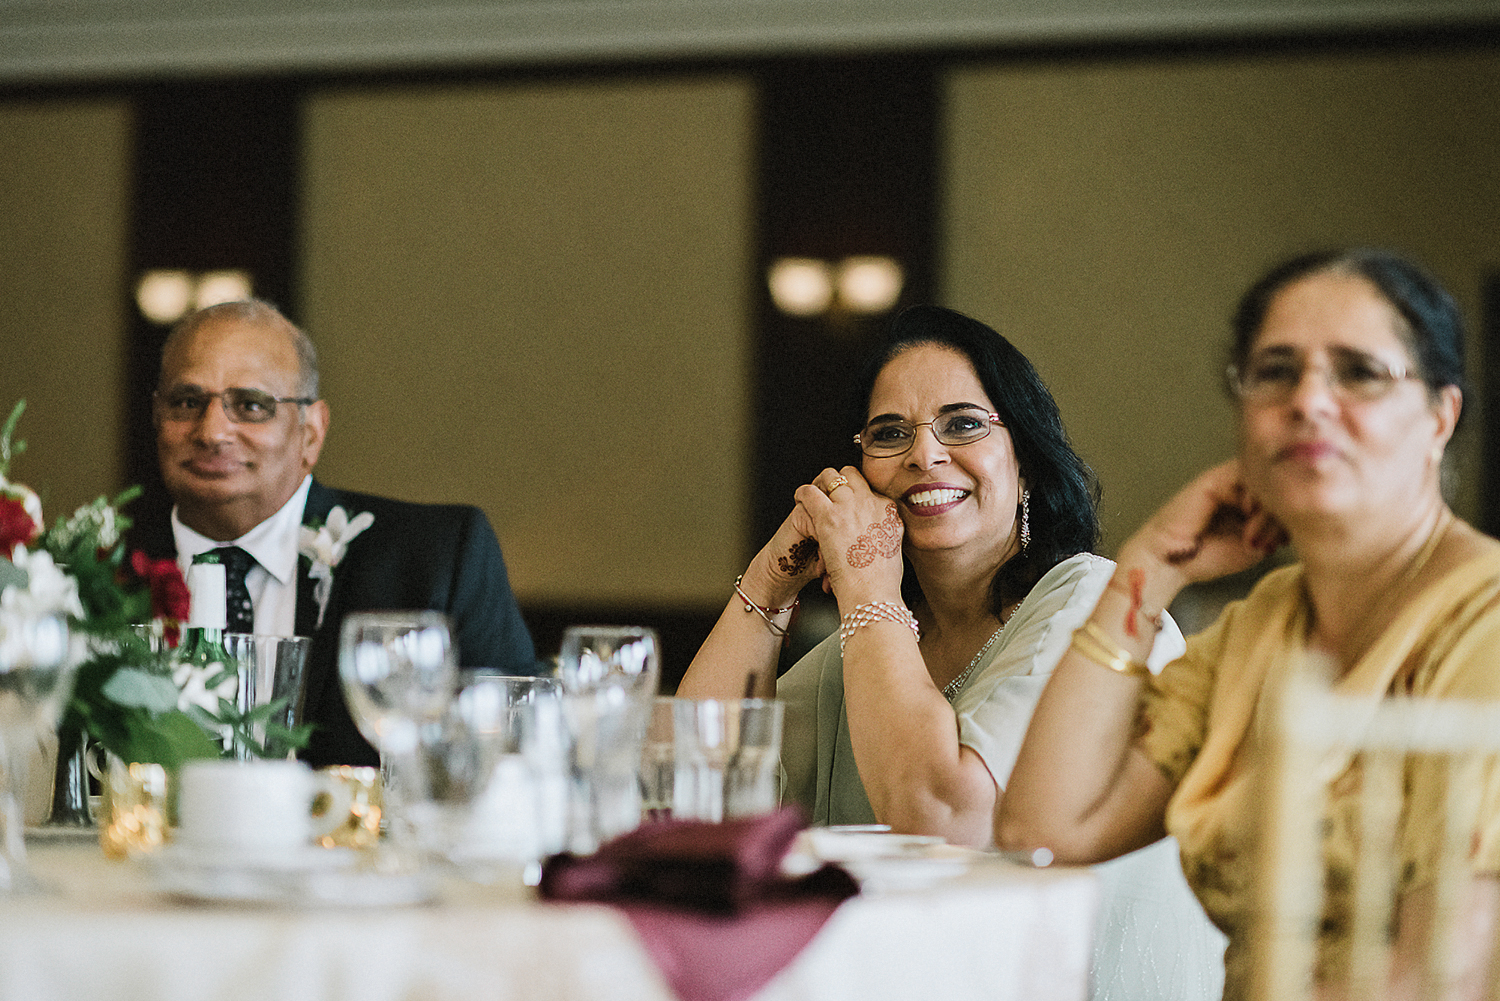 Toronto-Photojournalism-wedding-photographers-3B-Photography-Candid-Documentary-Film-Photography-Analog-Ontario-Hamilton-Port-Perry-Venue-temple-ceremony-sikh-Brides-mother-emotional-during-bride's-speech.jpg